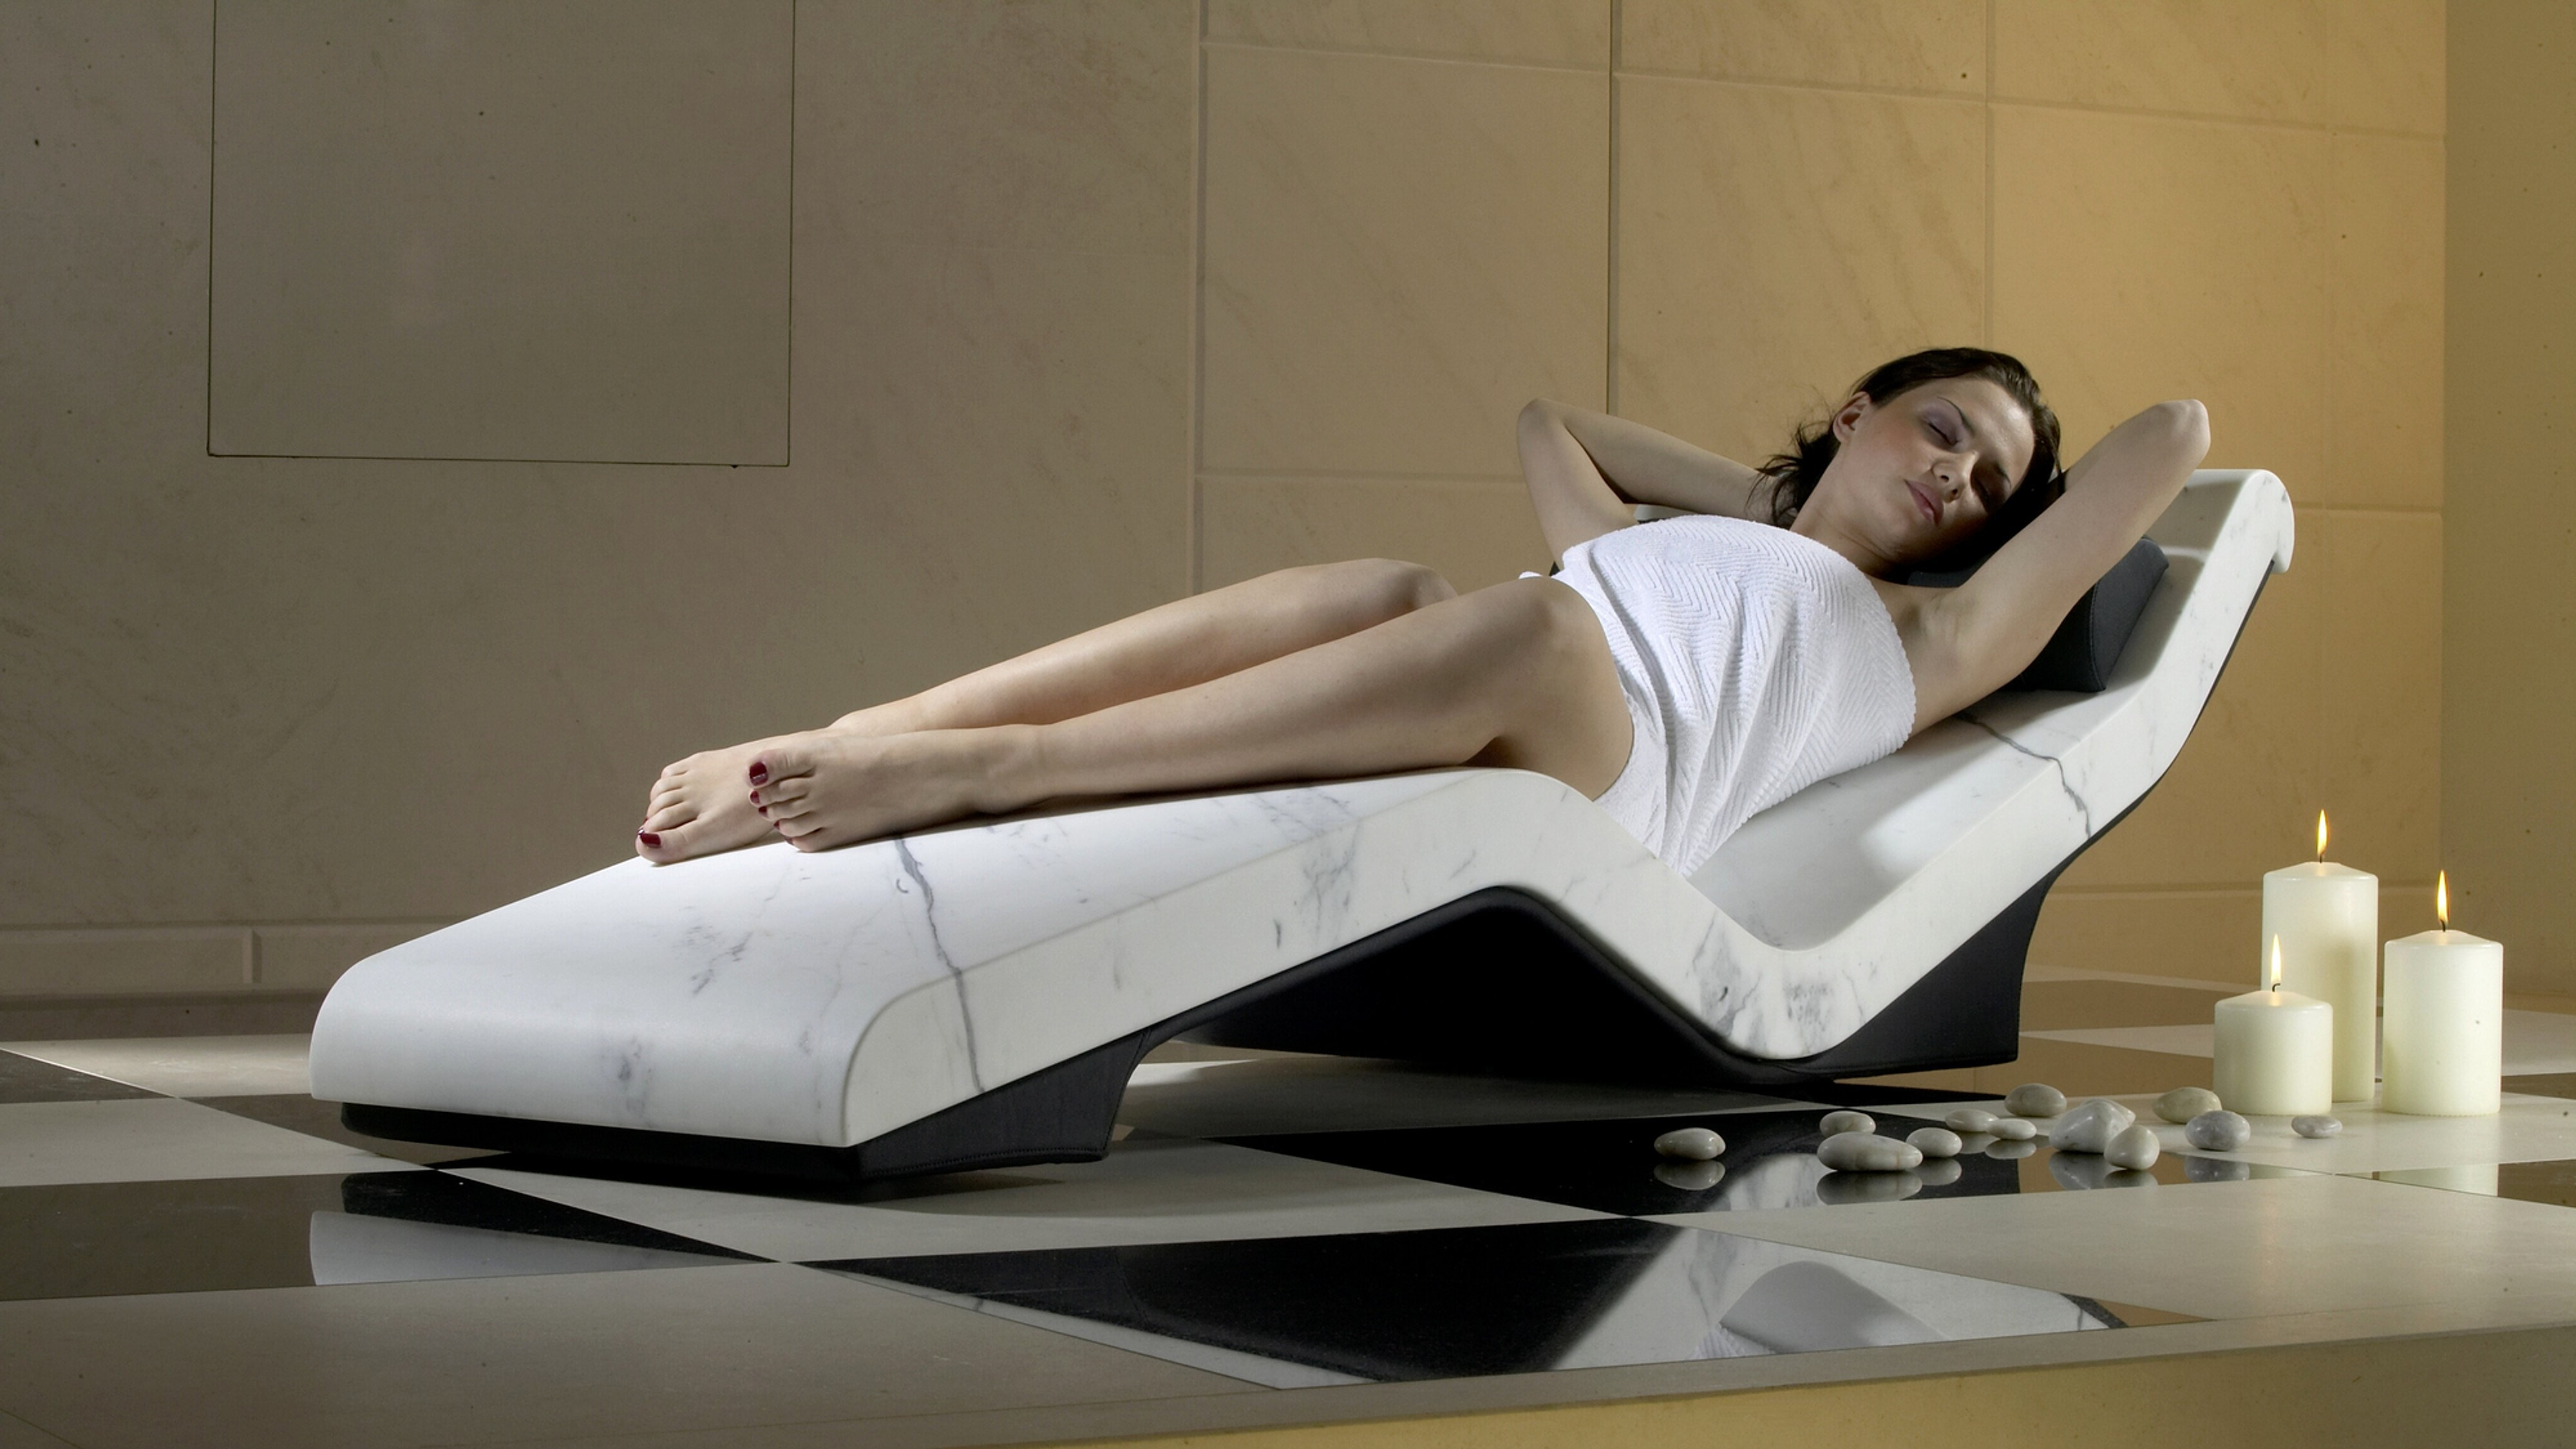 CLEOPATRA SPA Relaxation Lounger Heated Loungers SPA TableHAMMAM